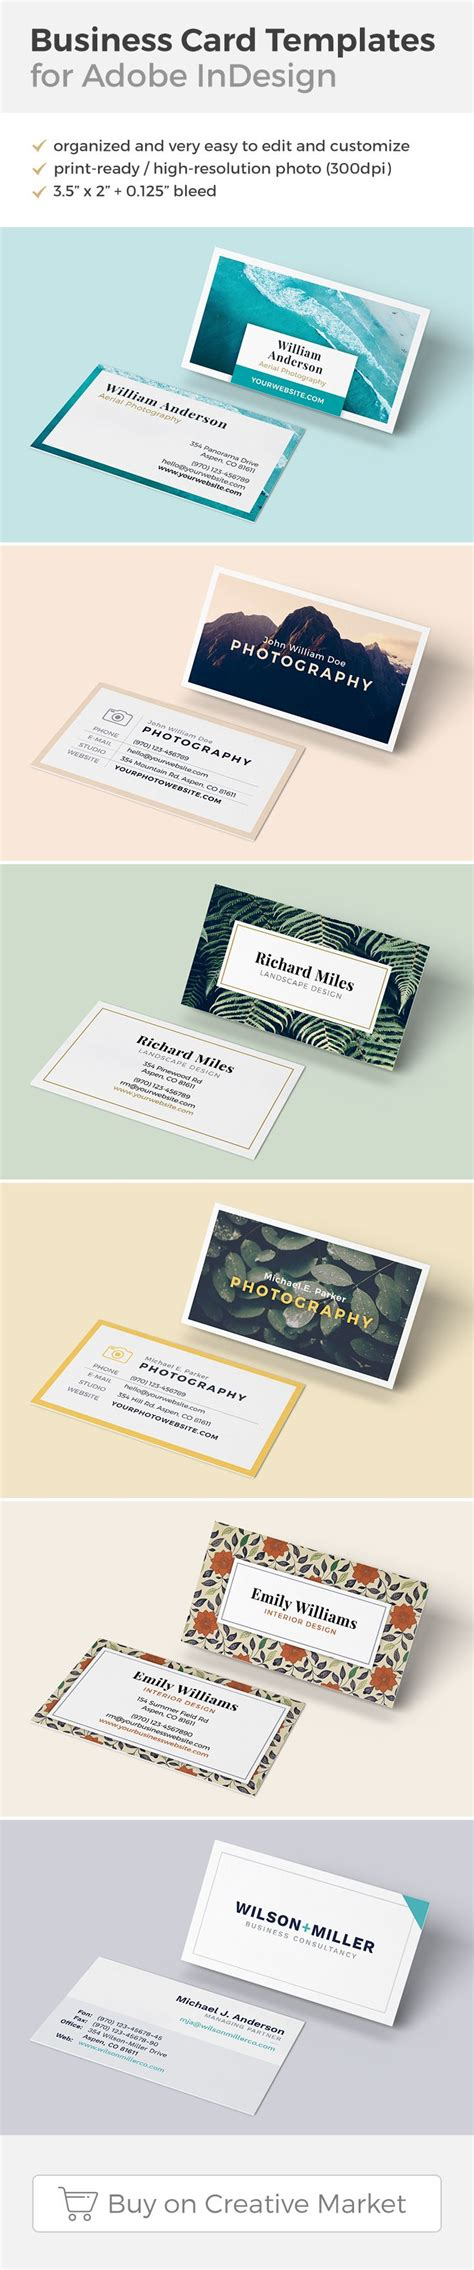 best of indesign business card template new business